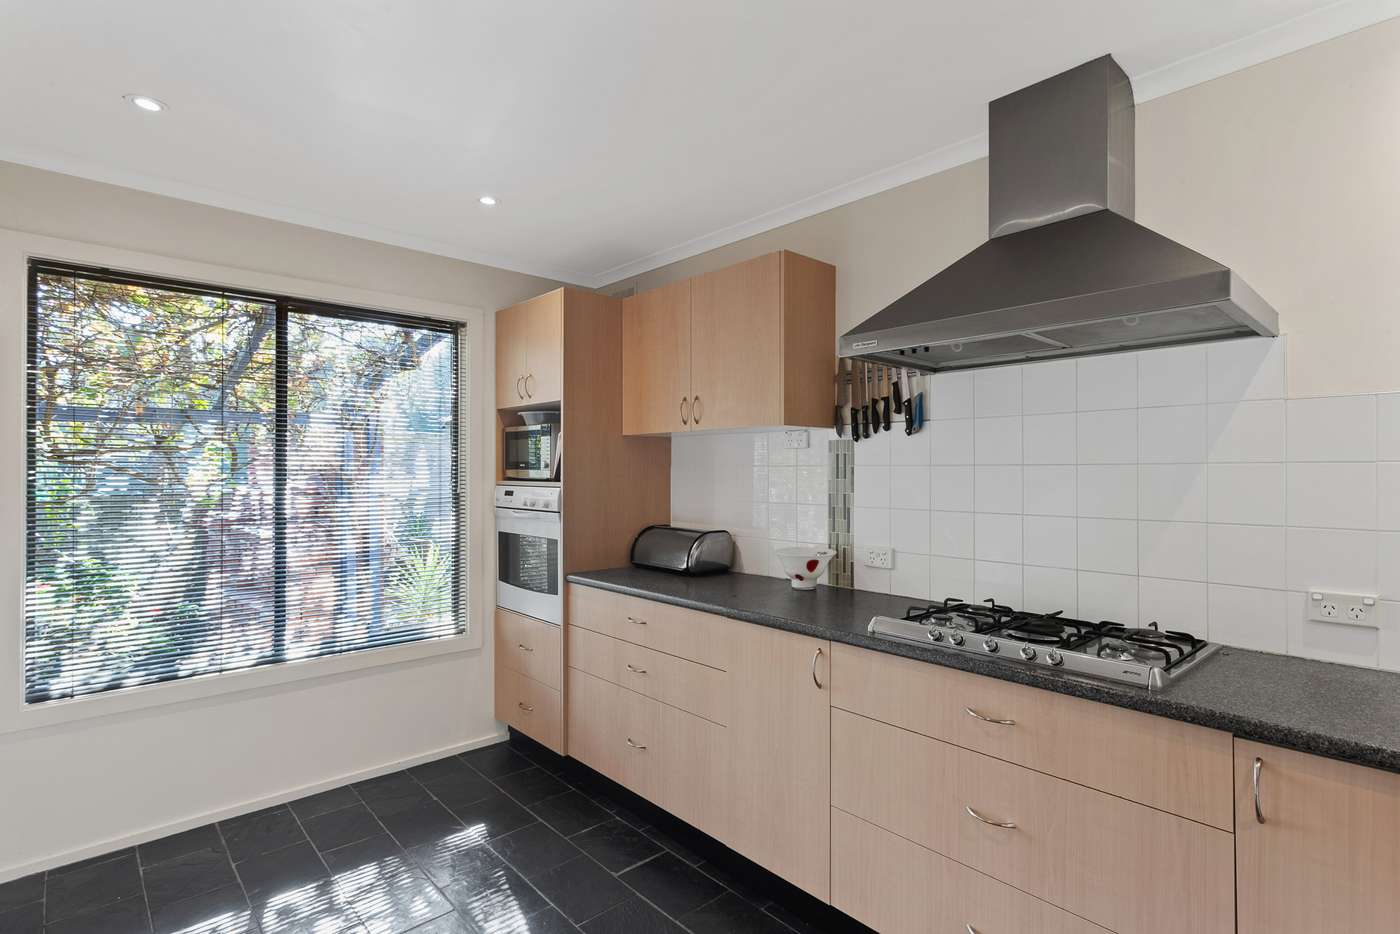 Sixth view of Homely house listing, 7 Sedgman Road, Wimbledon Heights VIC 3922